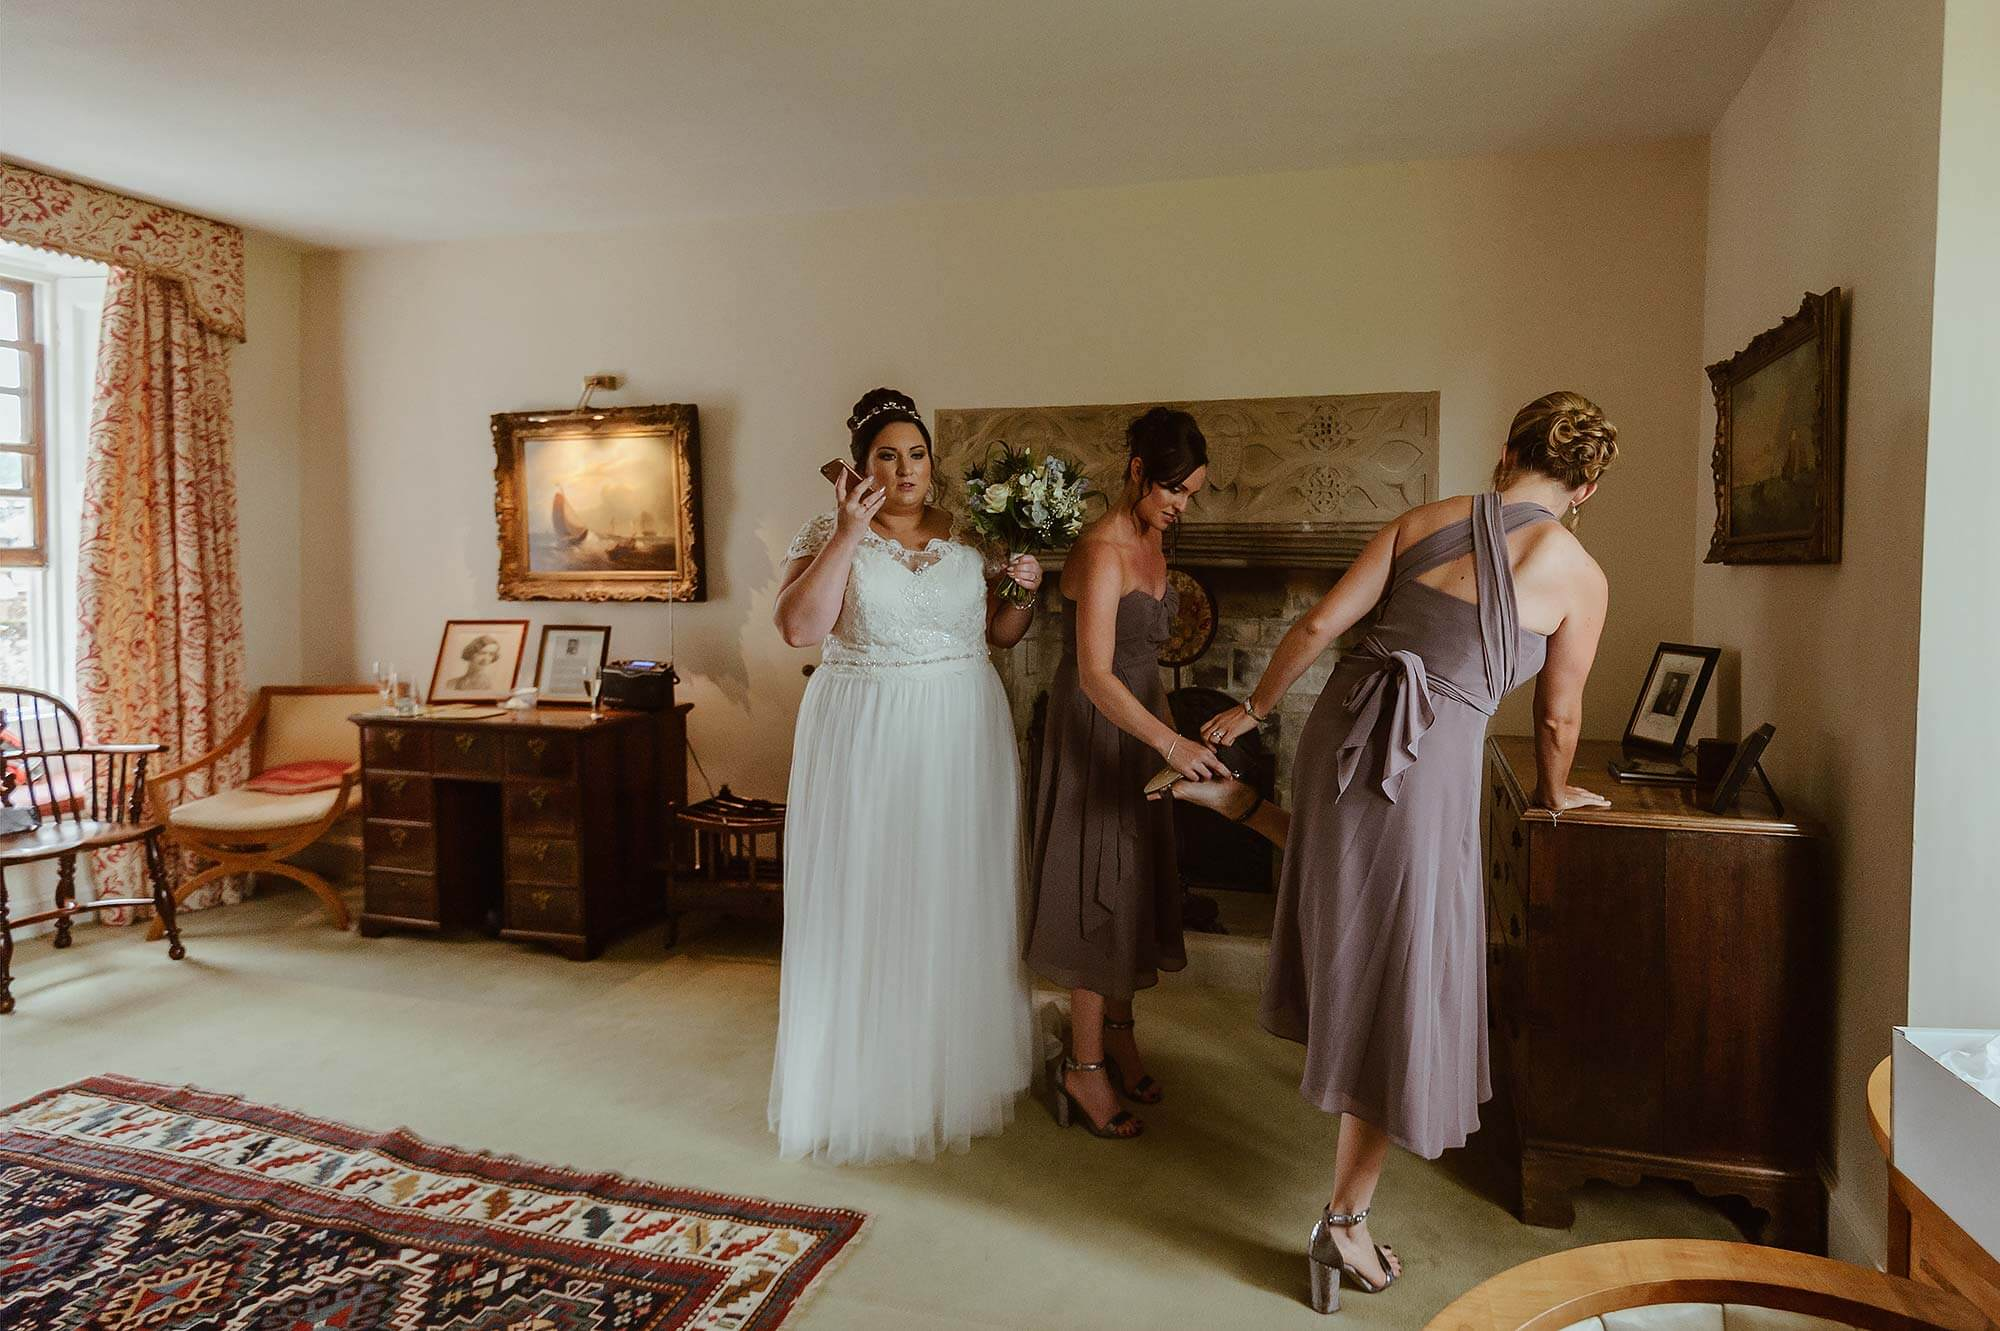 Bride and bridesmaids getting ready at Cadhay House in Devon.